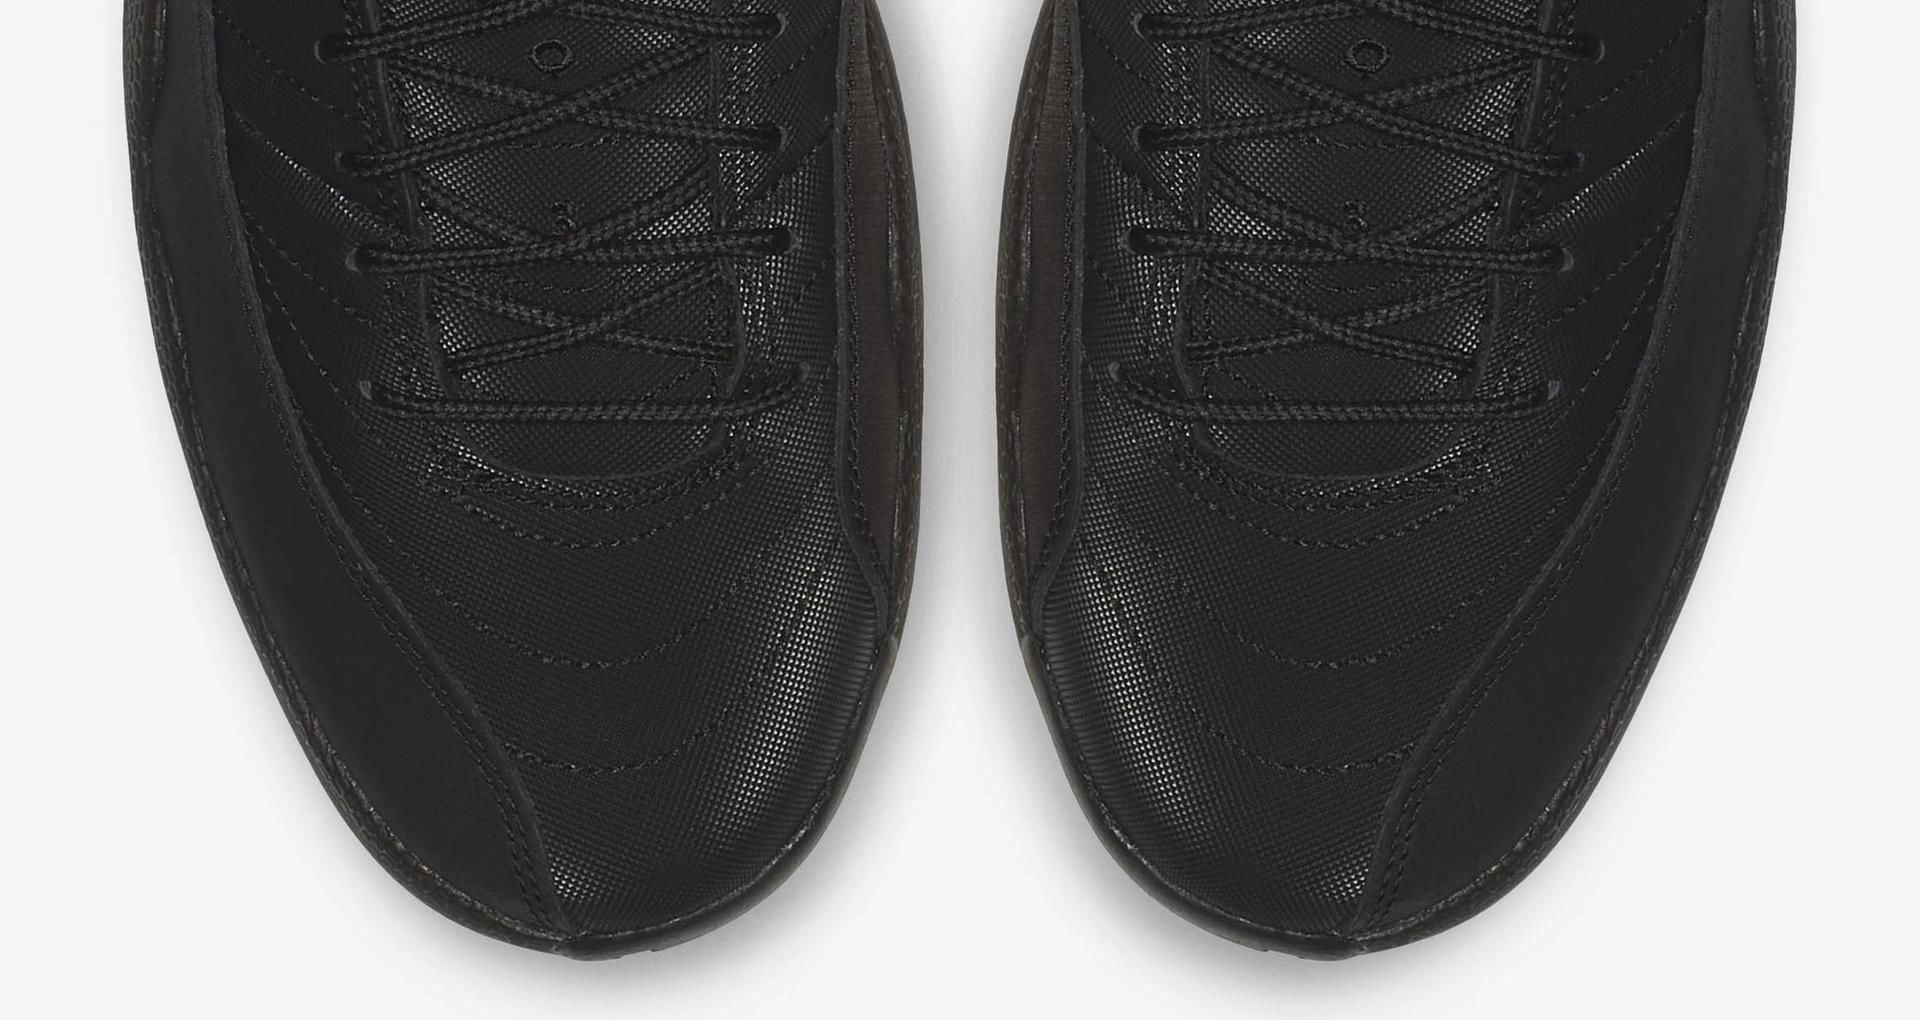 separation shoes d43fc fe8c5 Air Jordan 12 Retro Winter 'Black & Anthracite' Release Date ...